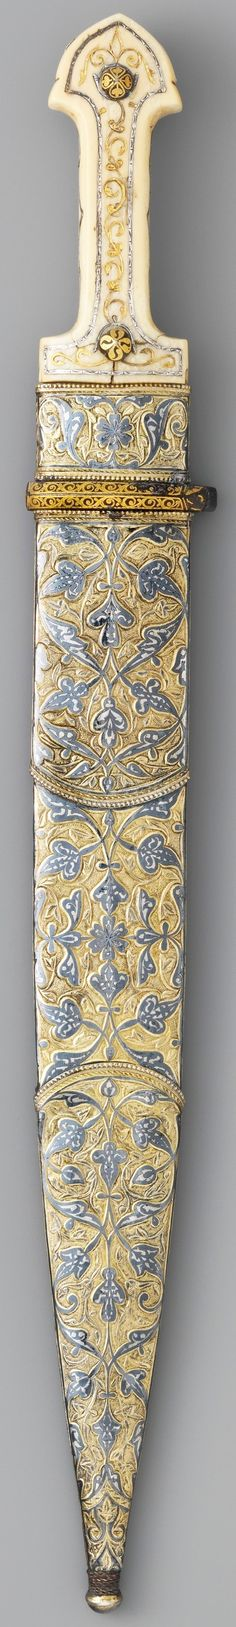 Caucasian qama / kindjal ), 1856–57, 1861, steel, bone, silver, gold, shark skin, ivory, niello, iron, L. with sheath 19 1/4 in. (48.9 cm); L. without sheath 19 1/16 in. (48.4 cm); L. of blade 14 3/4 in. Wt. 12.8 oz. (362.9 g), Met Museum.